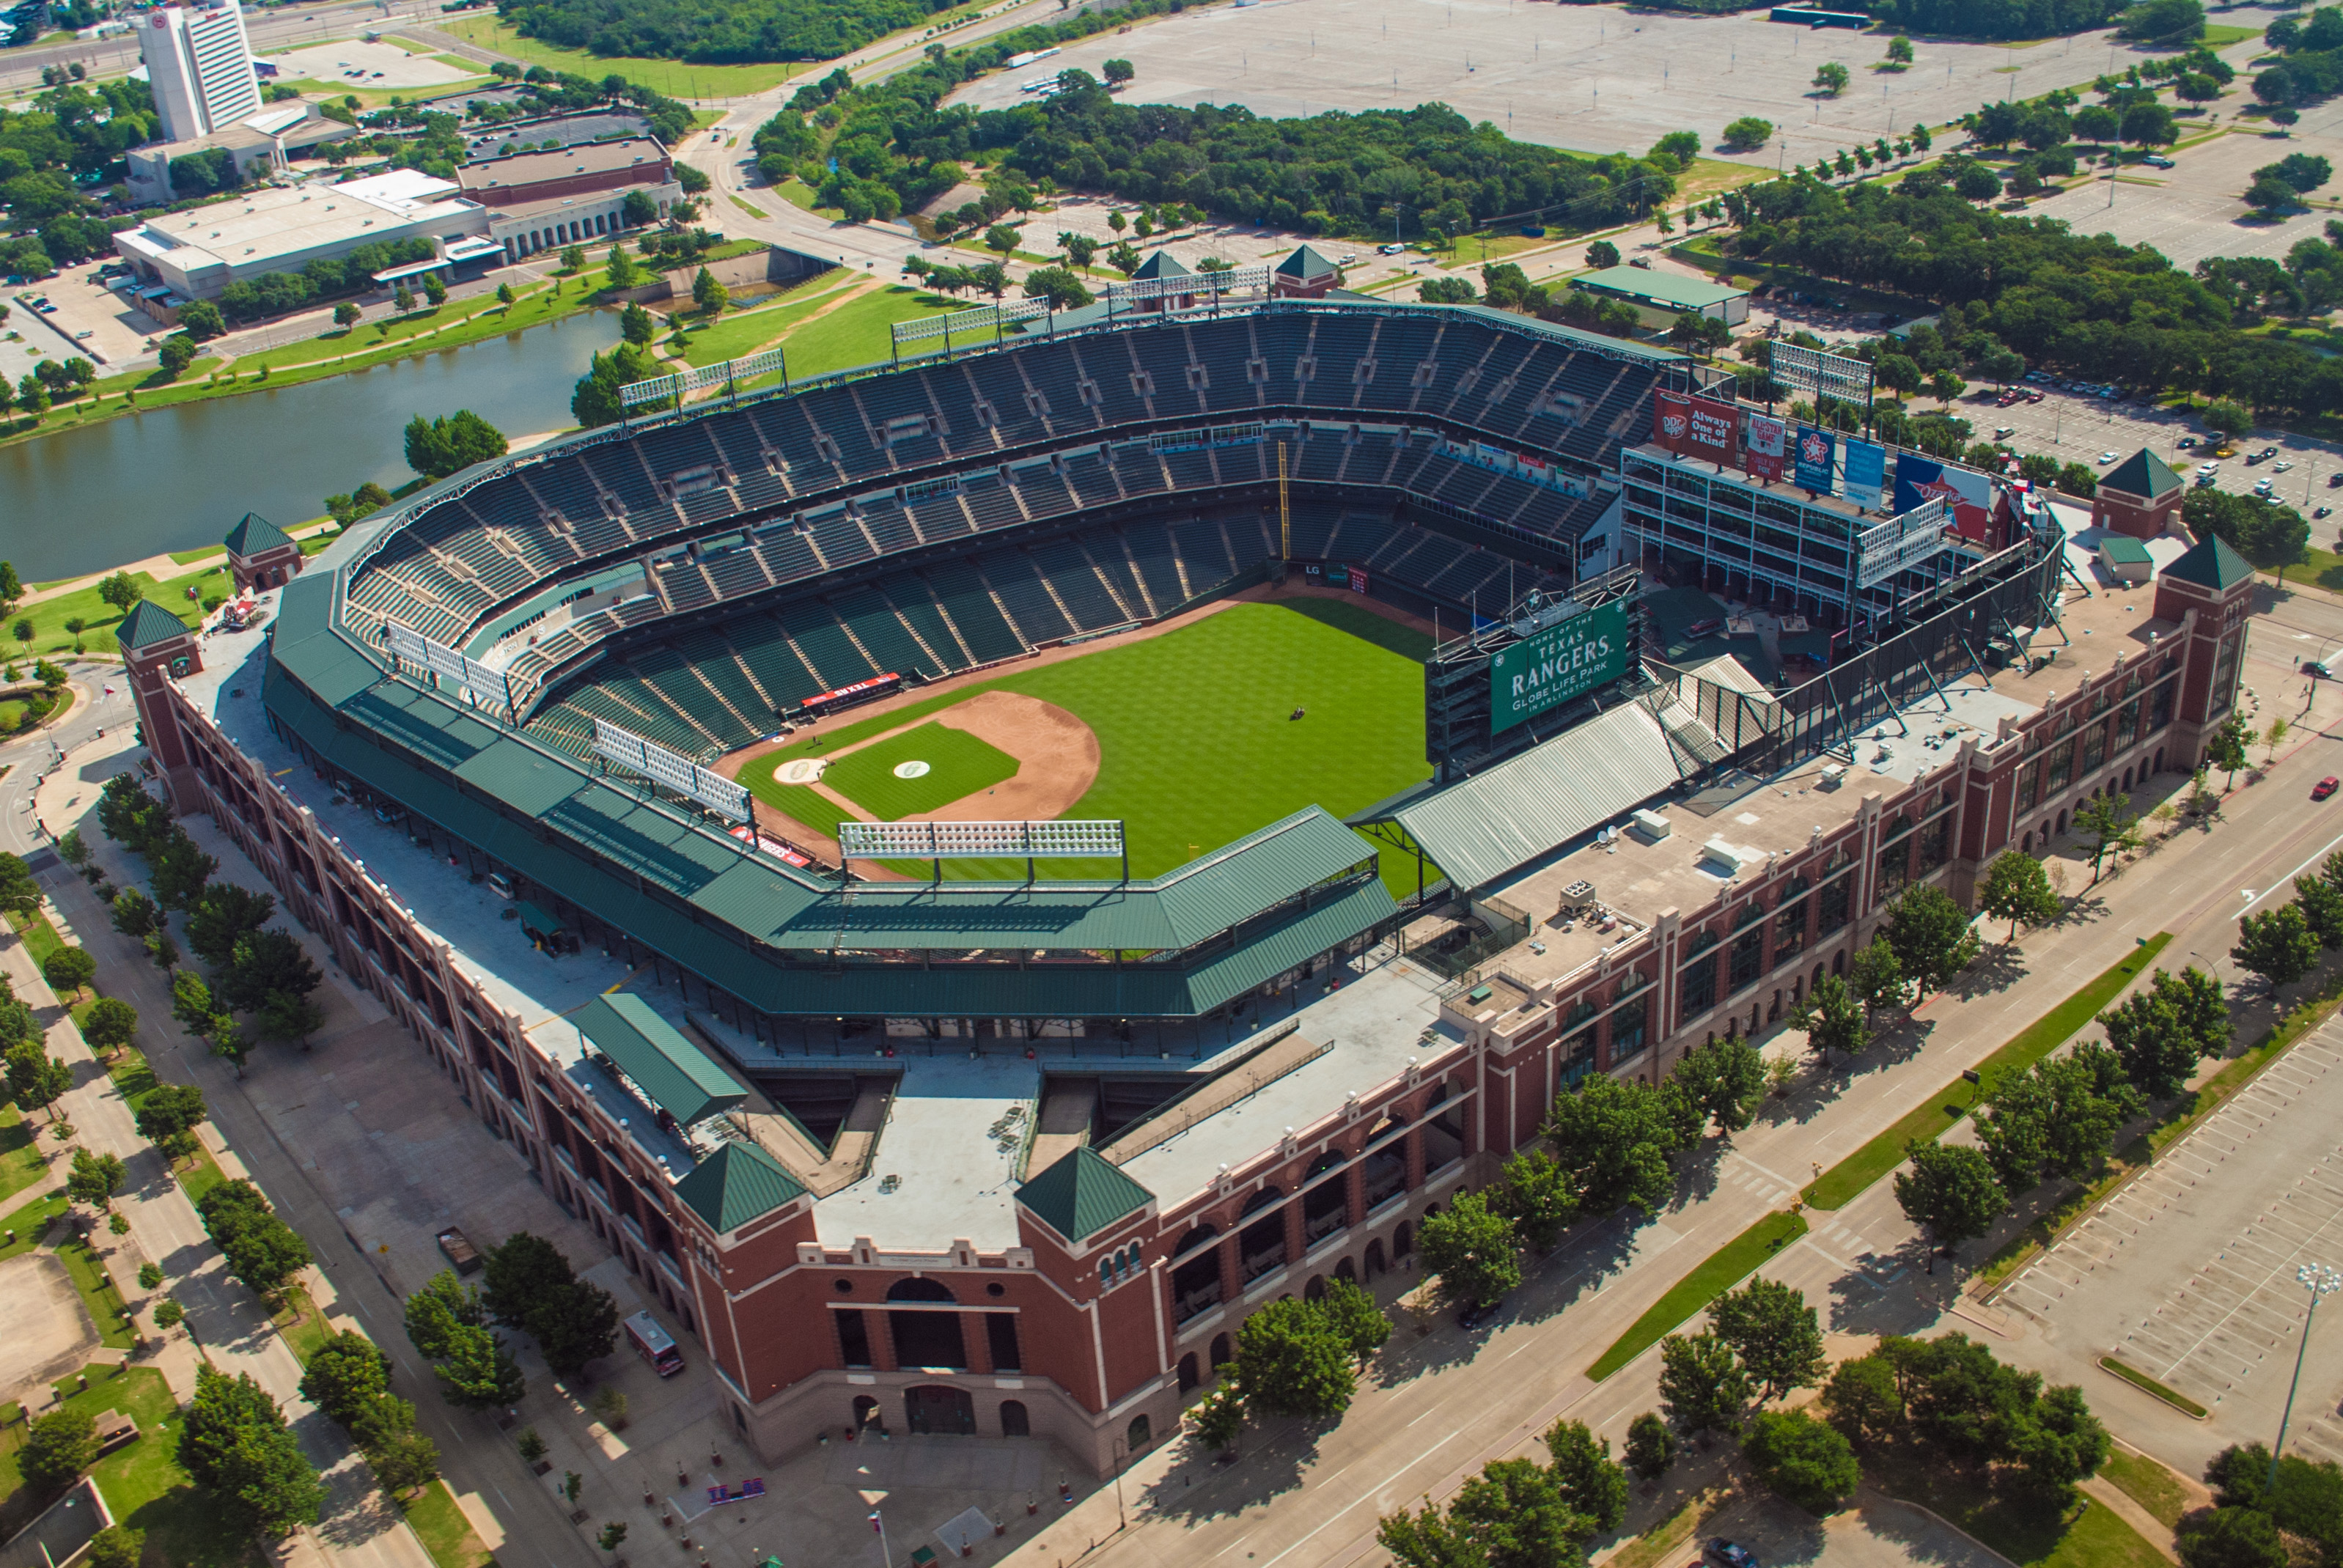 The current Globe Life Park, originally know as the Ballpark in Arlington, opened in 1994.